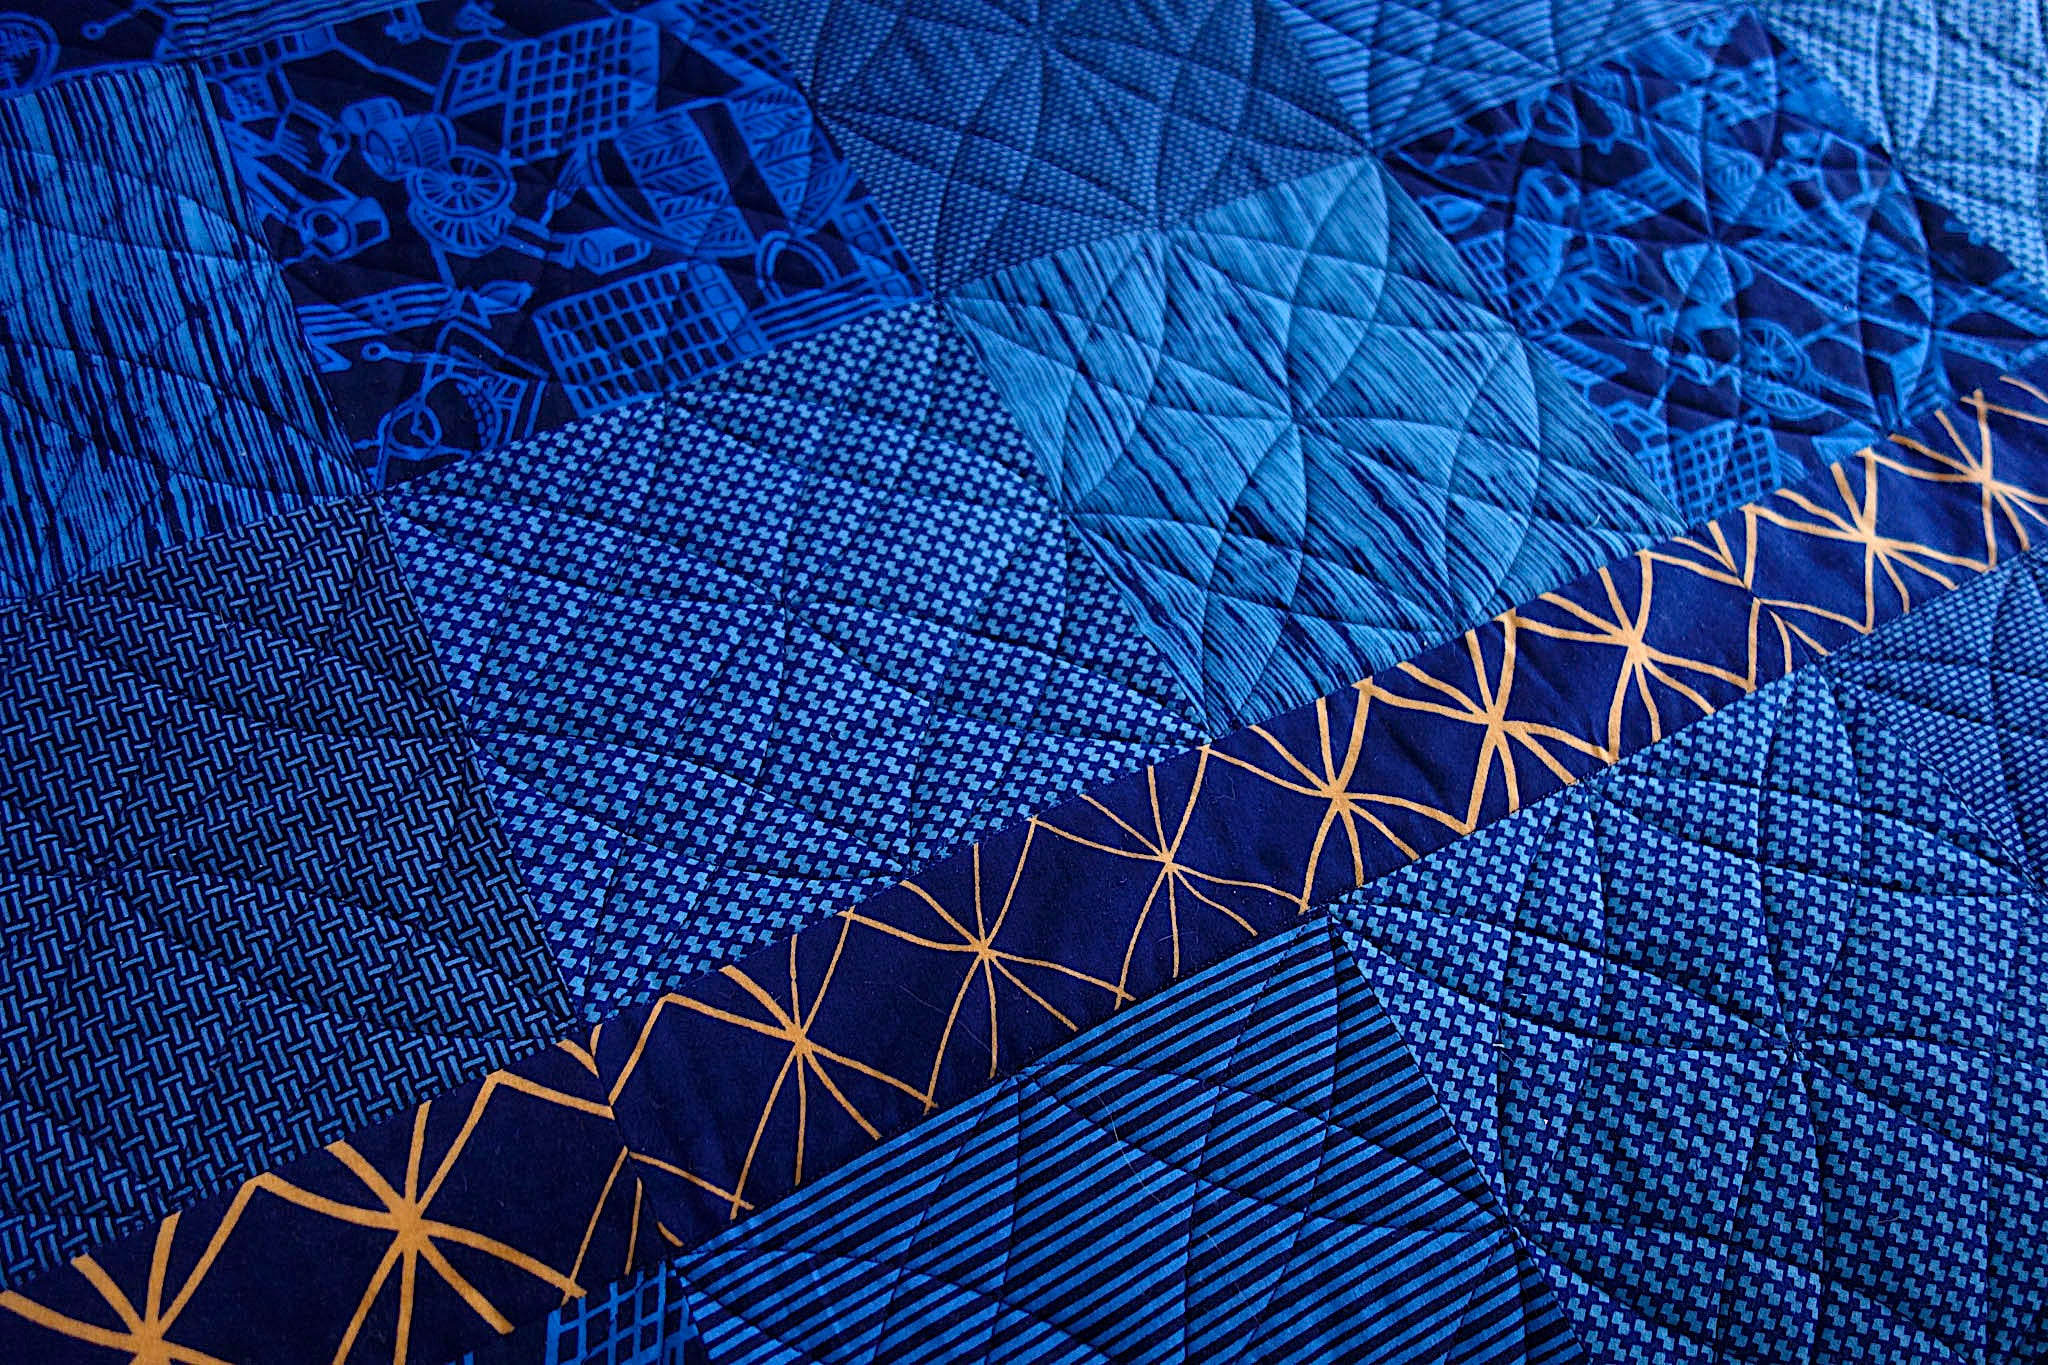 Quilting design on Indiglow, a king-size quilt by Patricia Belyea